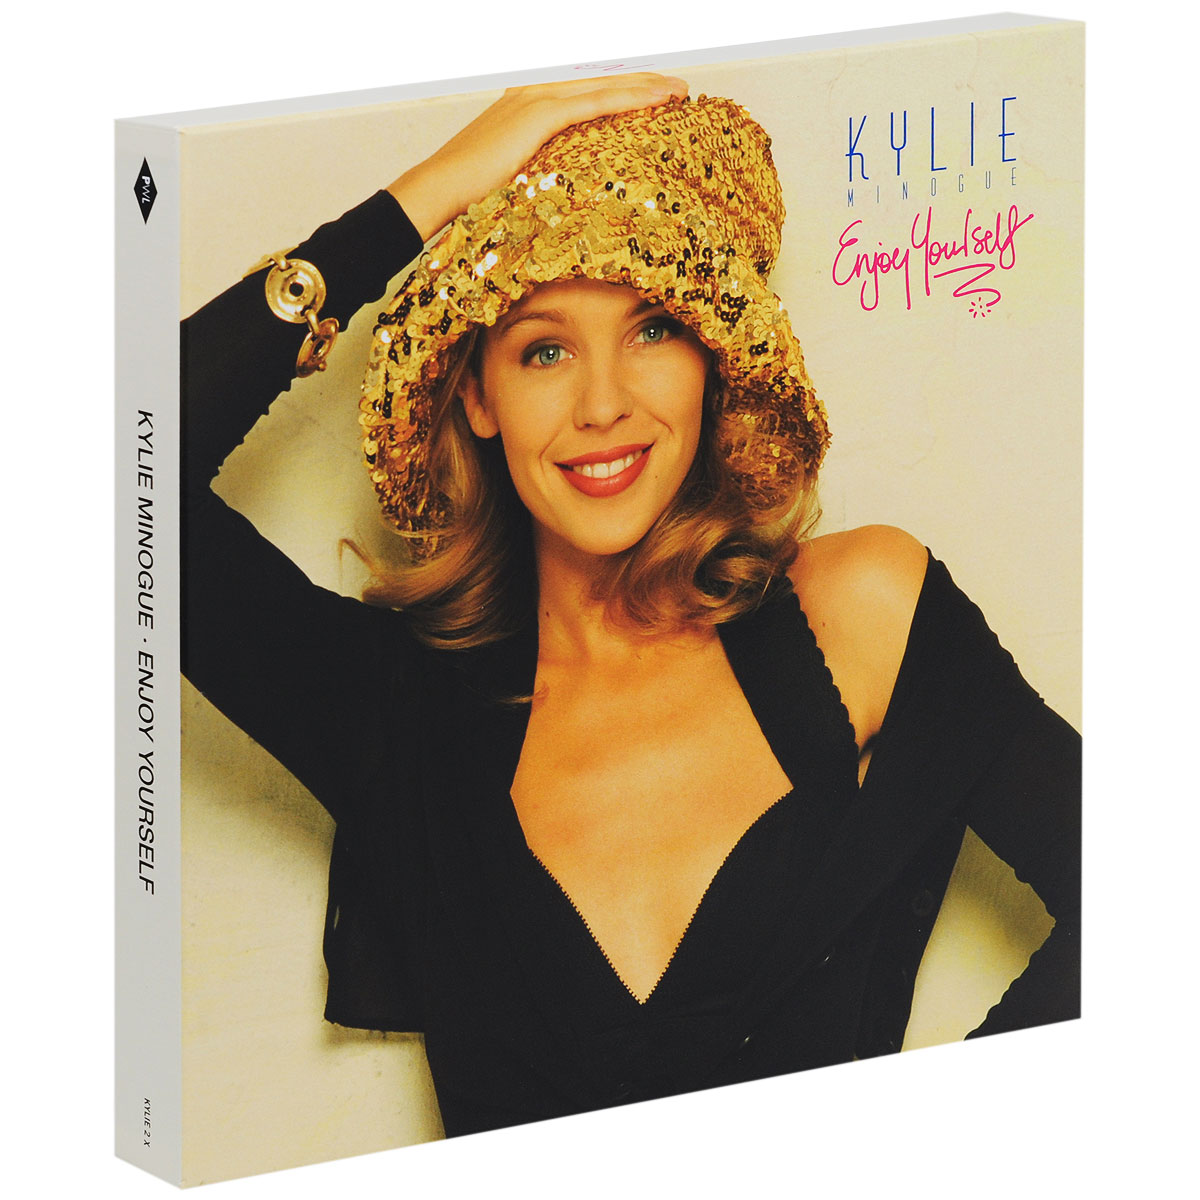 Кайли Миноуг Kylie Minogue. Enjoy Yourself (2 CD + DVD + LP) кайли миноуг kylie minogue enjoy yourself 2 cd dvd lp